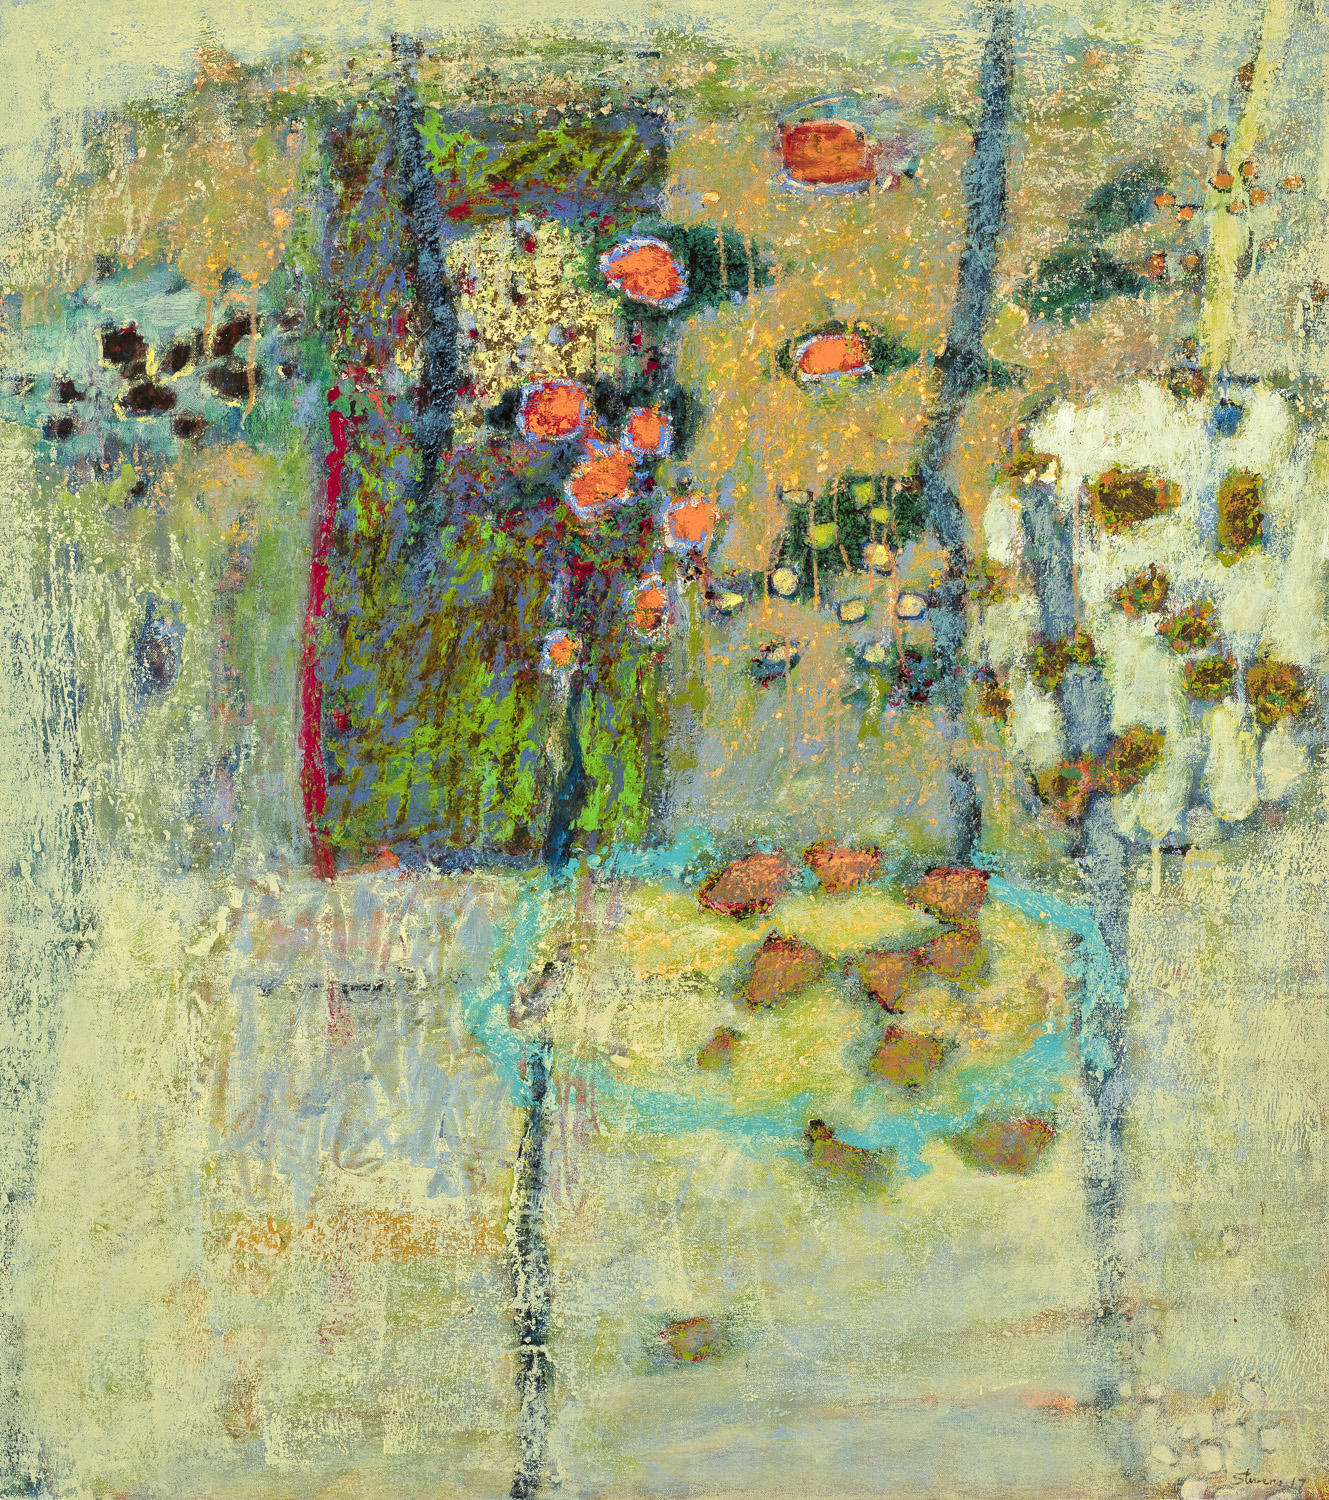 Patterns of Becoming  | oil on canvas | 36 x 32"